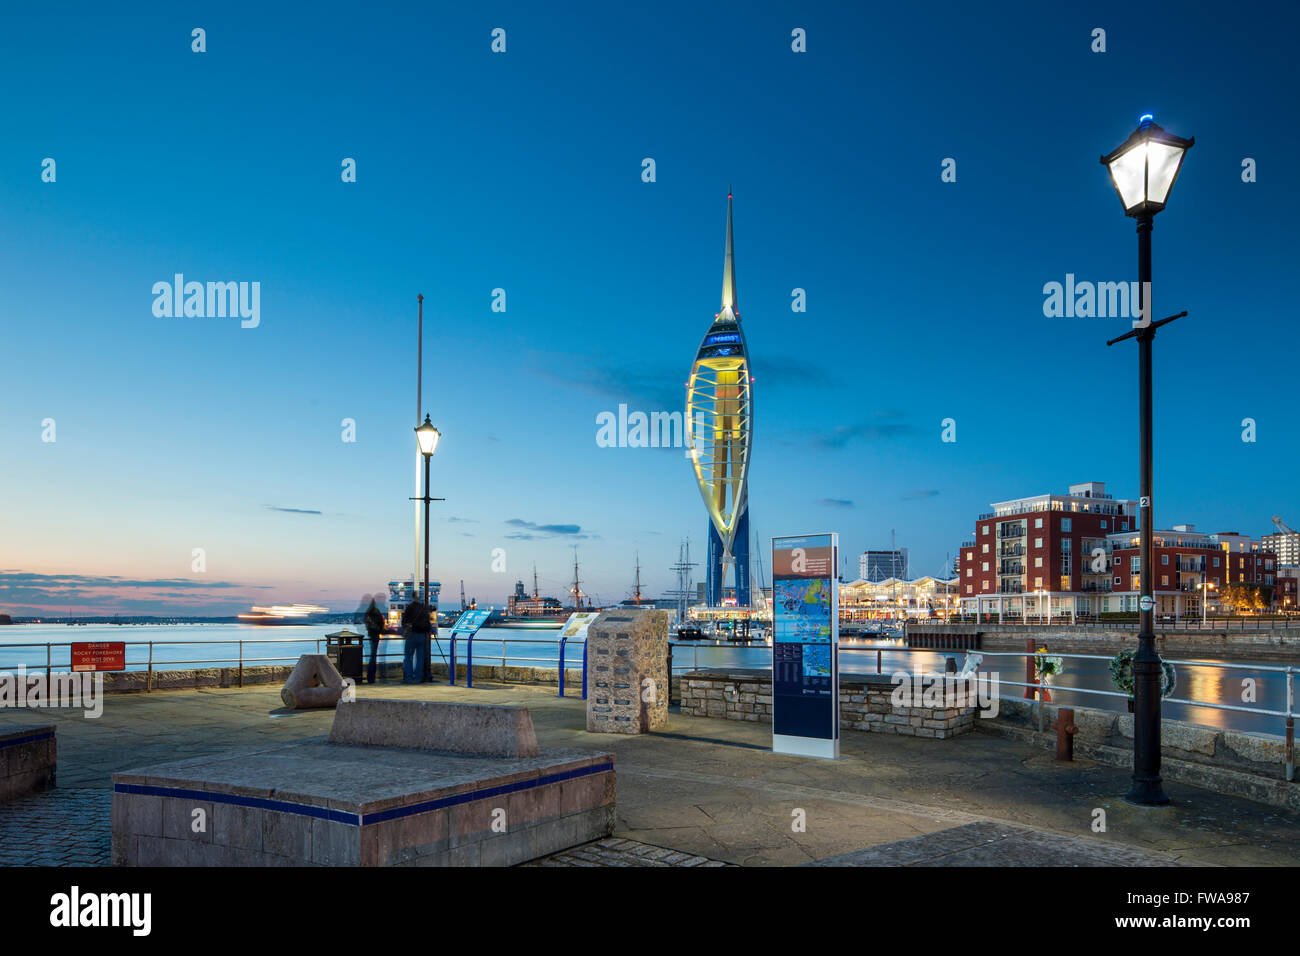 Night falls in Portsmouth Harbour, UK. Stock Photo